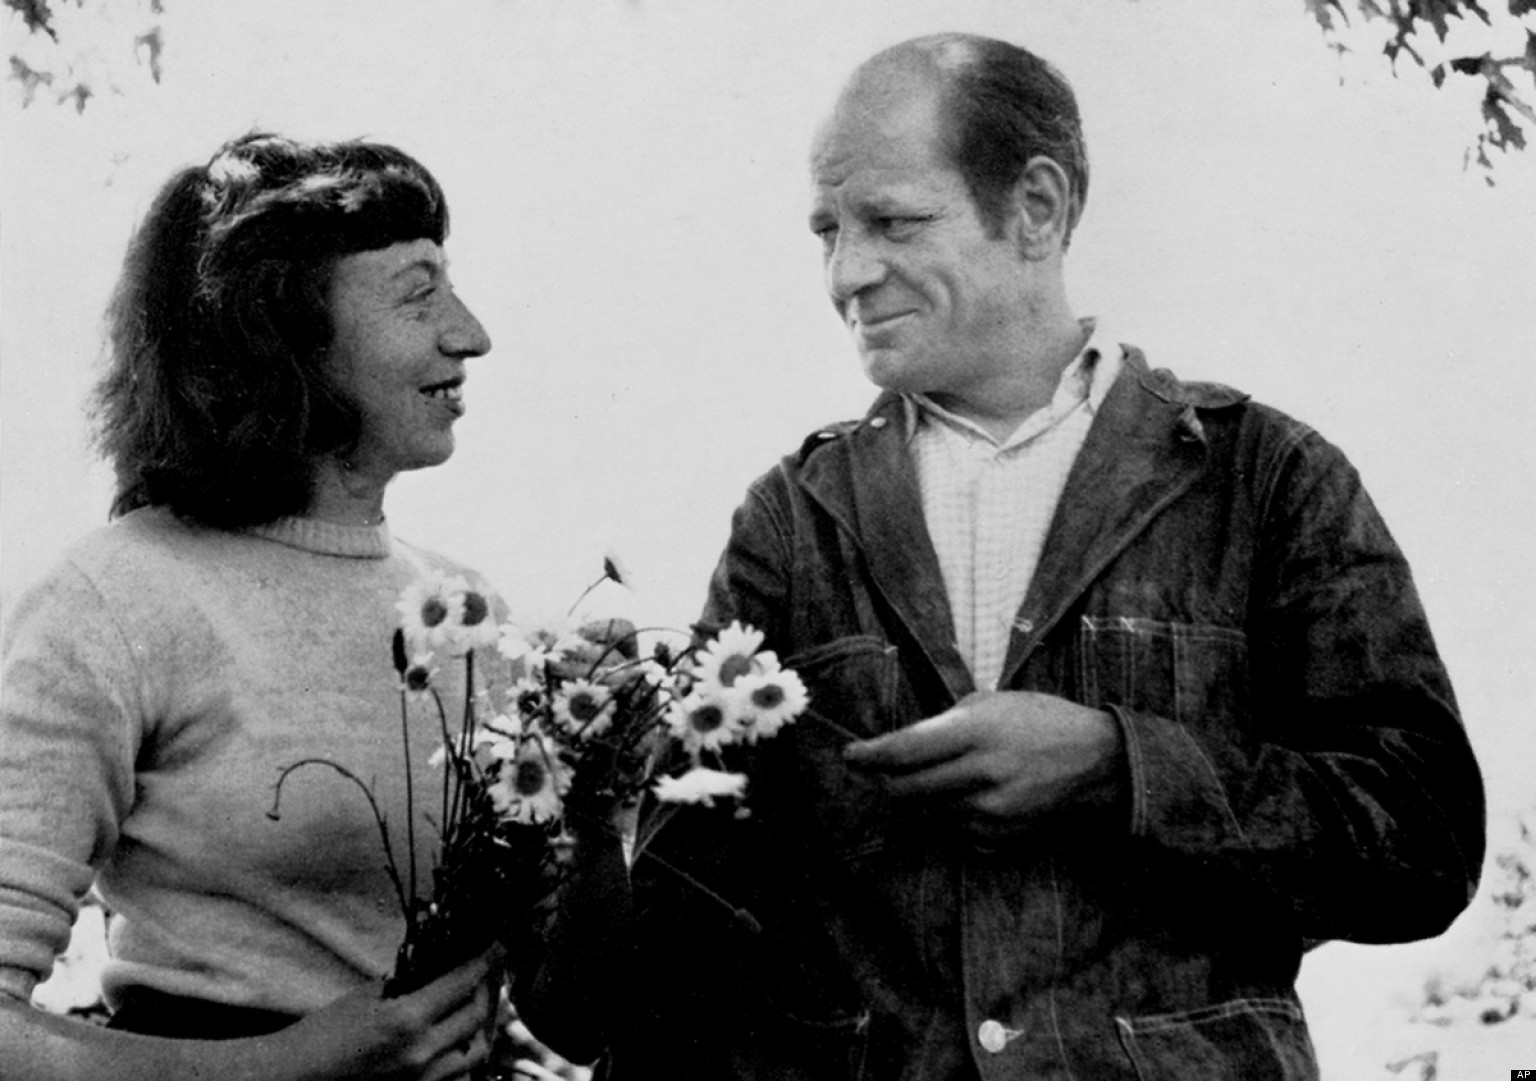 Lee Krasner & Jackson Pollock circa 1949 | Image from Archives of American Art (fair use)